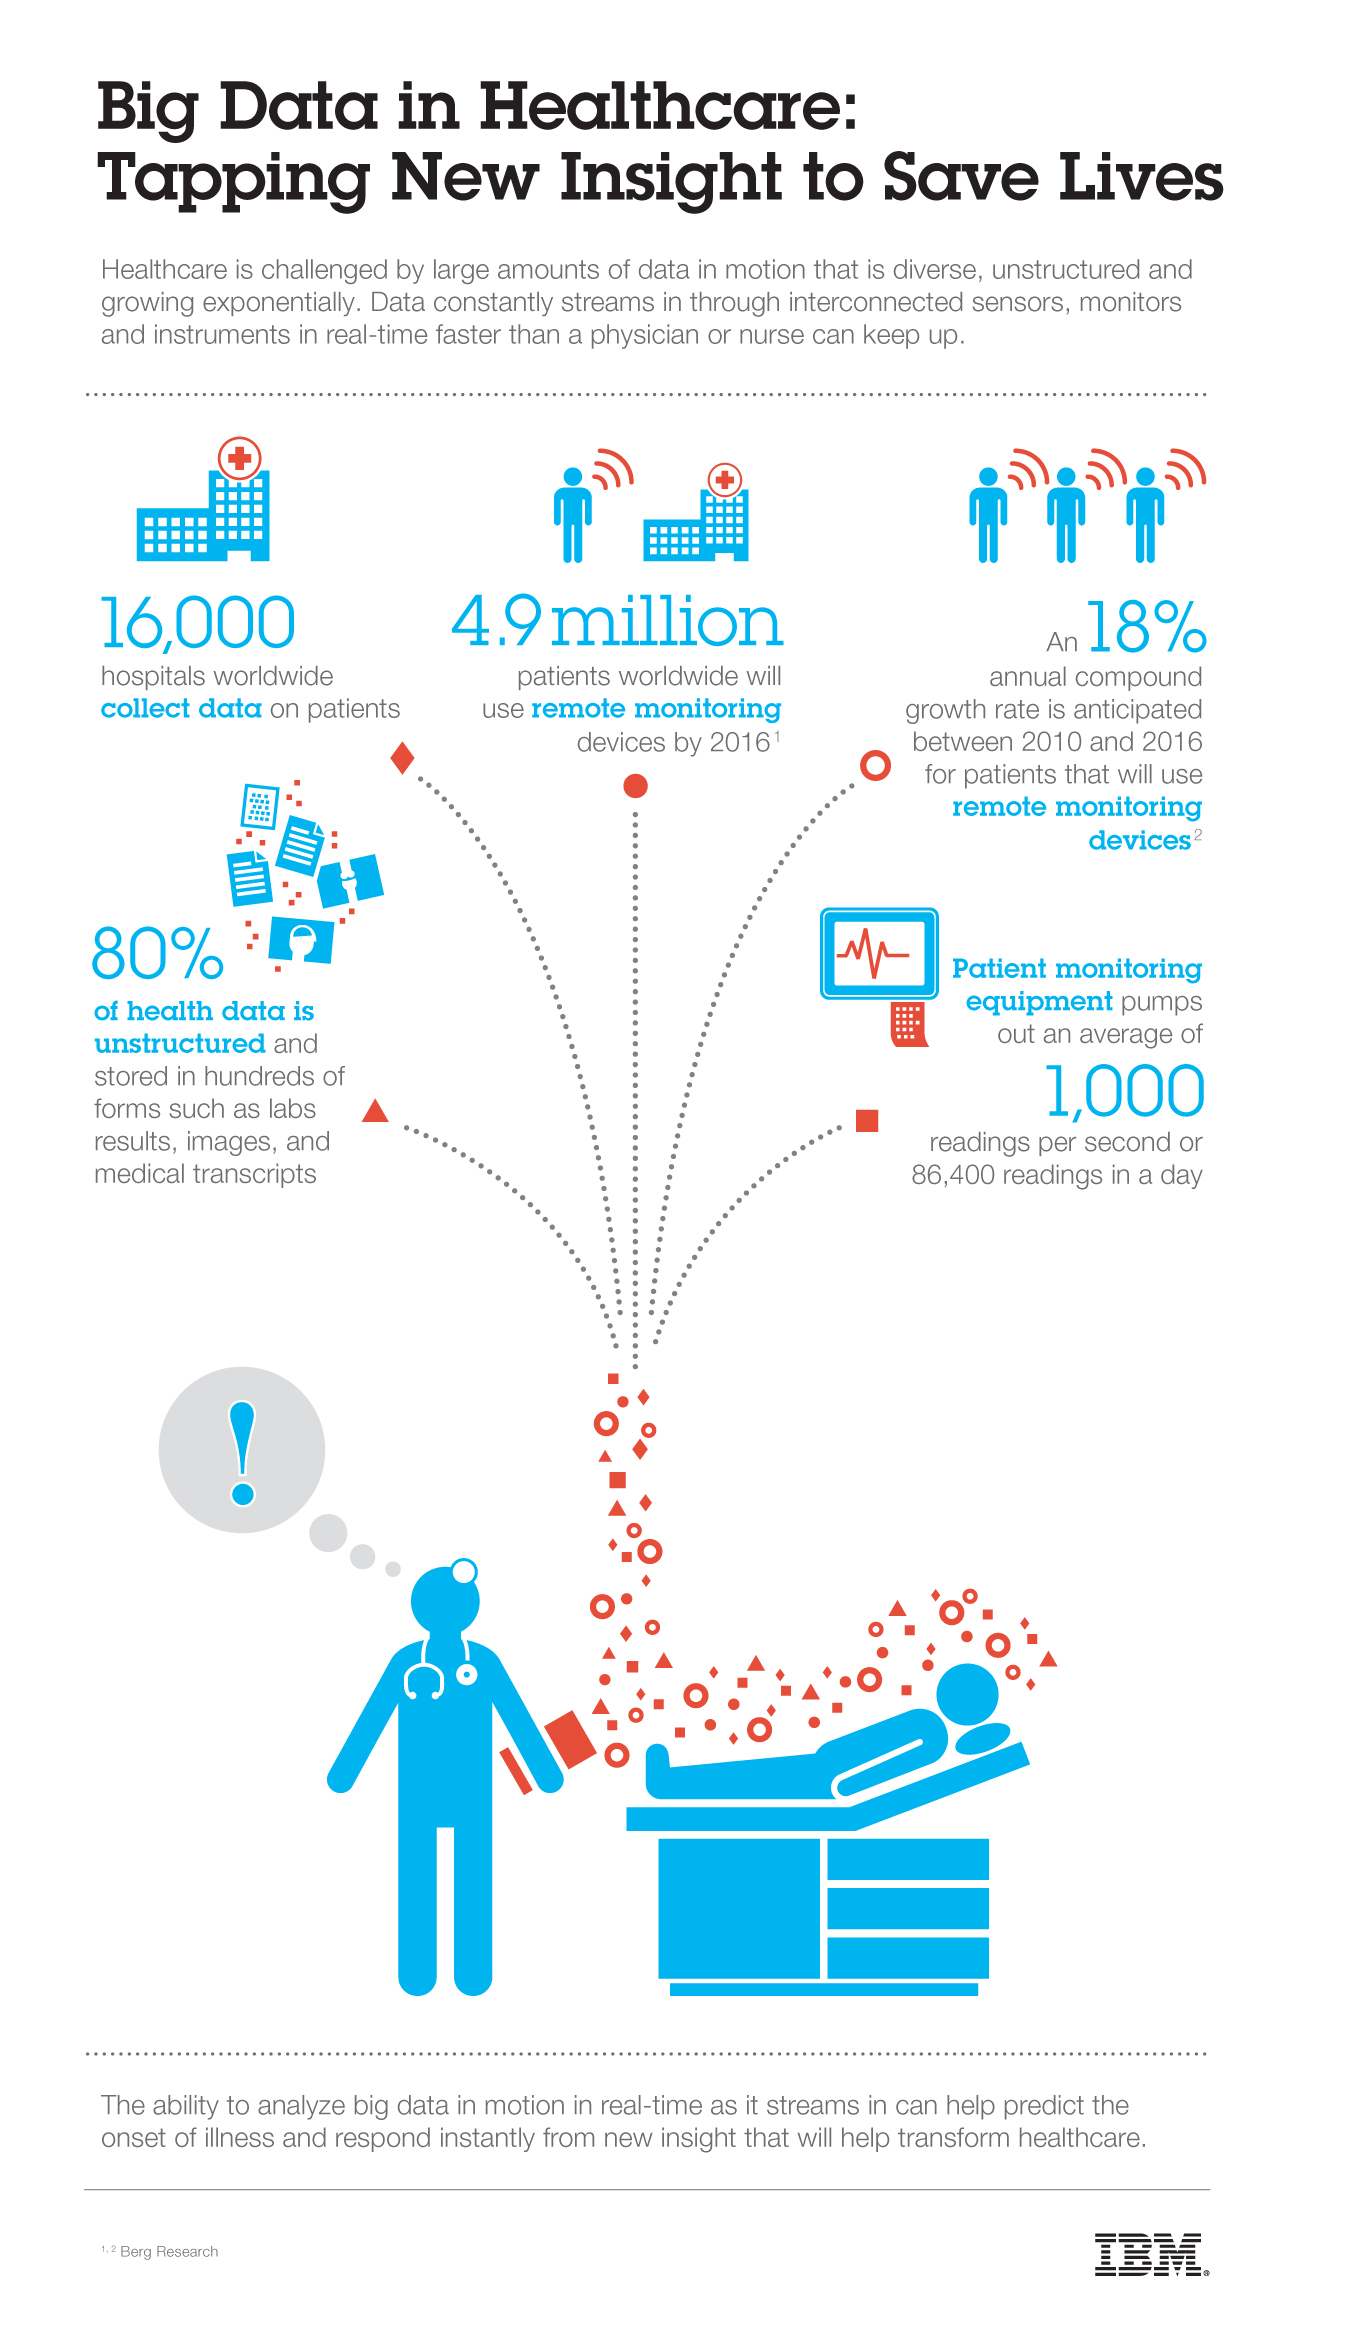 Real-time Big Data Analytics in Health Care Using Tools From IBM